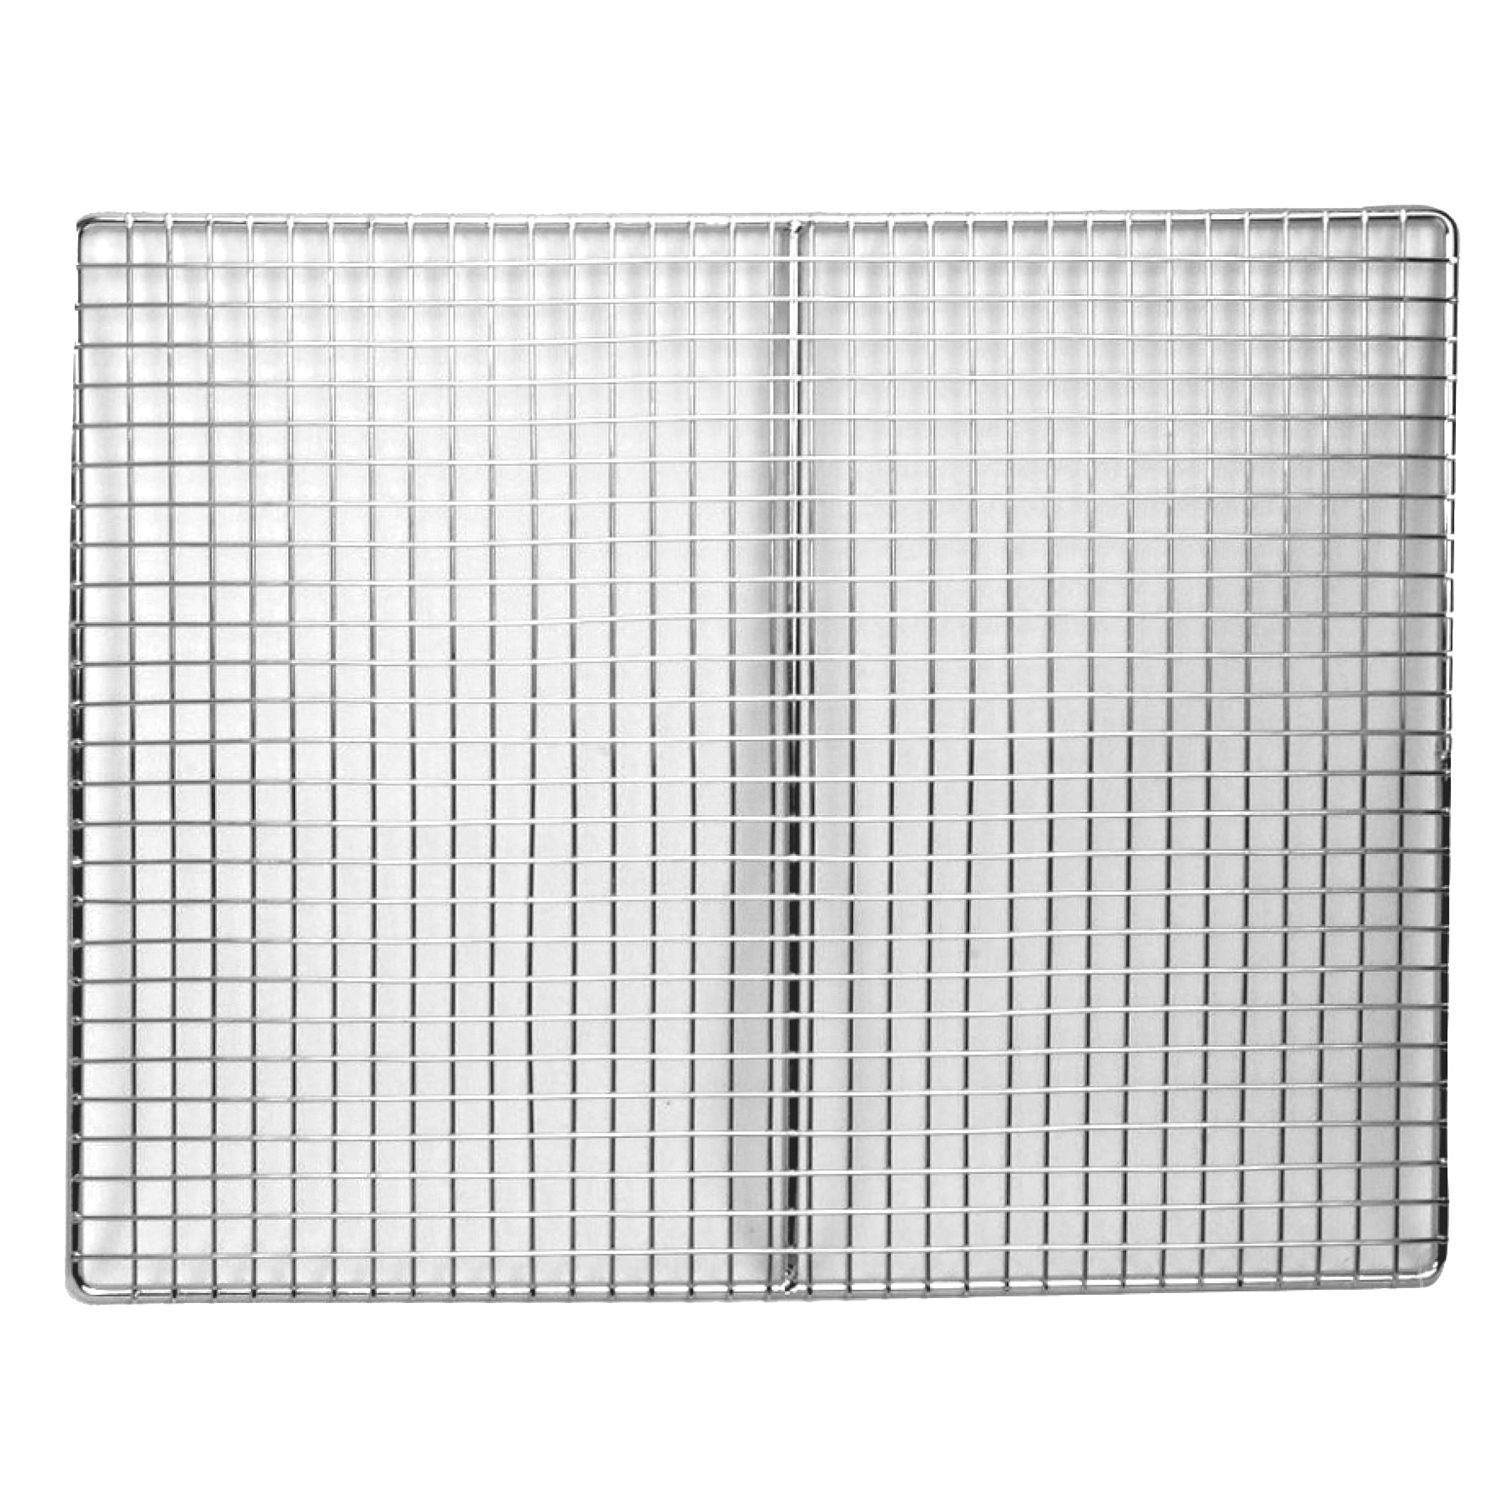 """Thunder Group 11 3/8"""" X 14 5/8"""" FRYER SCREEN, NICKEL PLATED 12 Piece"""